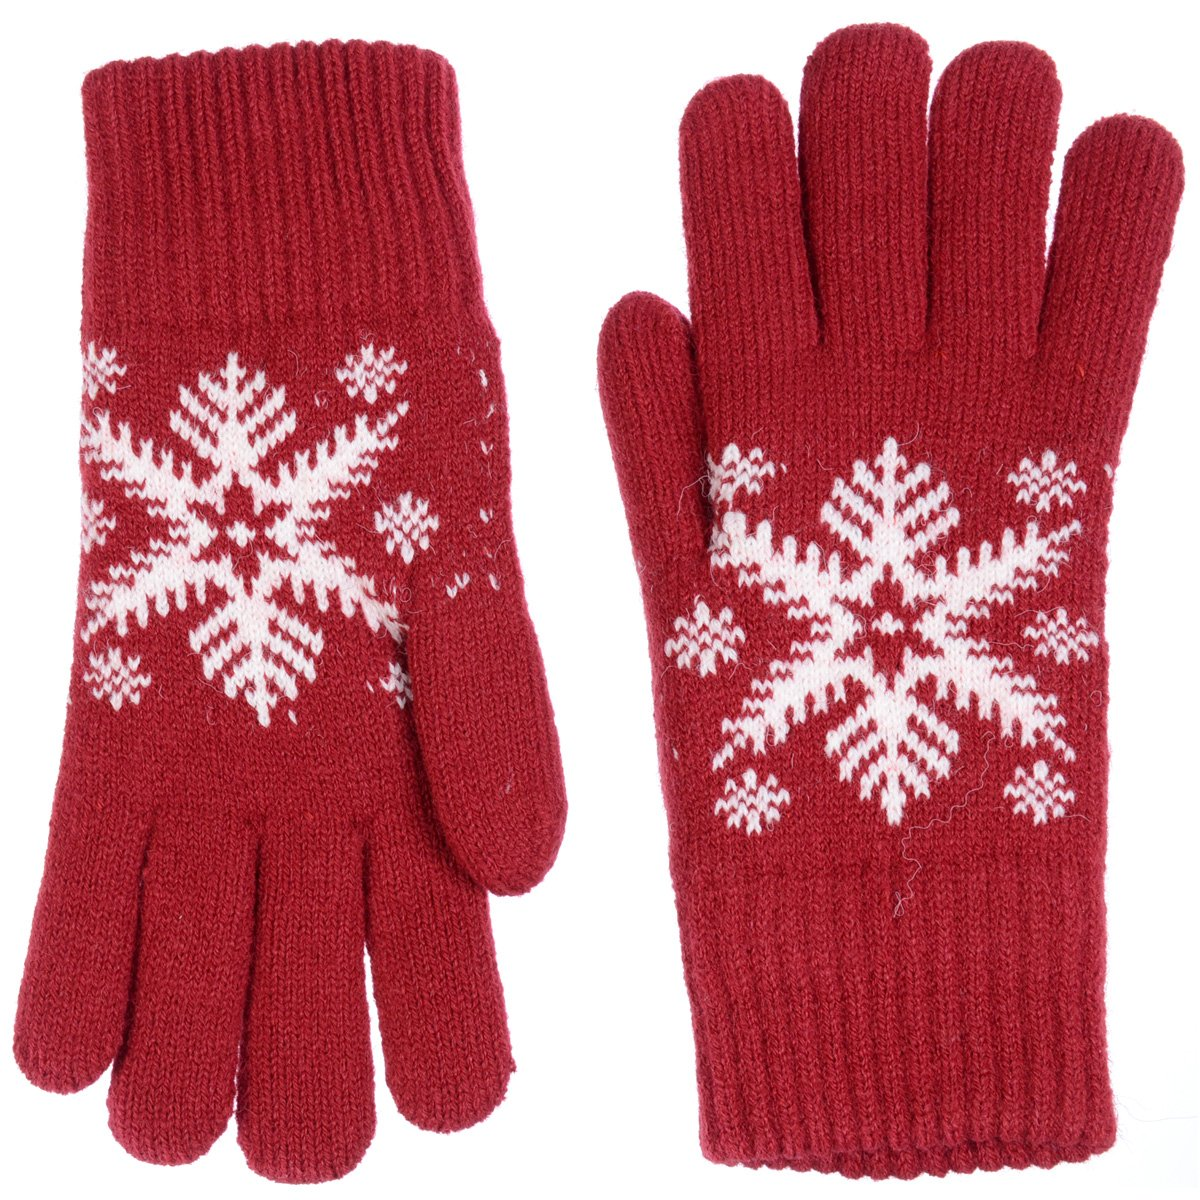 BYOS Womens Winter Ultra Warm Plush Fleece Lined Knit Gloves With Various Pattern Design (Red Snowflake) by Be Your Own Style (Image #3)